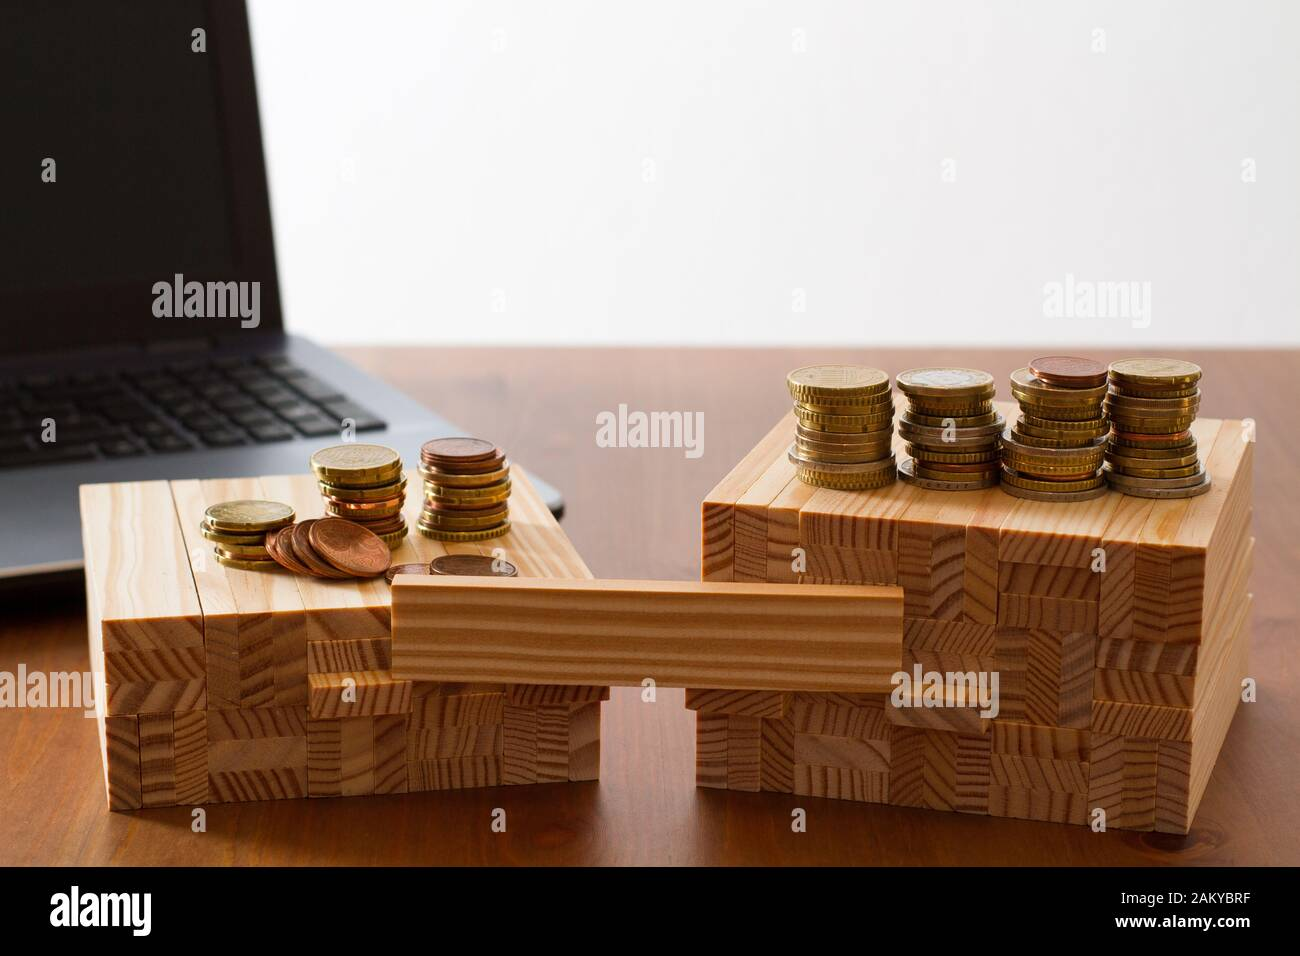 wooden building bricks arranged to symbolize gender gap, discrimination, unequal pay, inequality, or similar business/social Topics with one brick lef Stock Photo